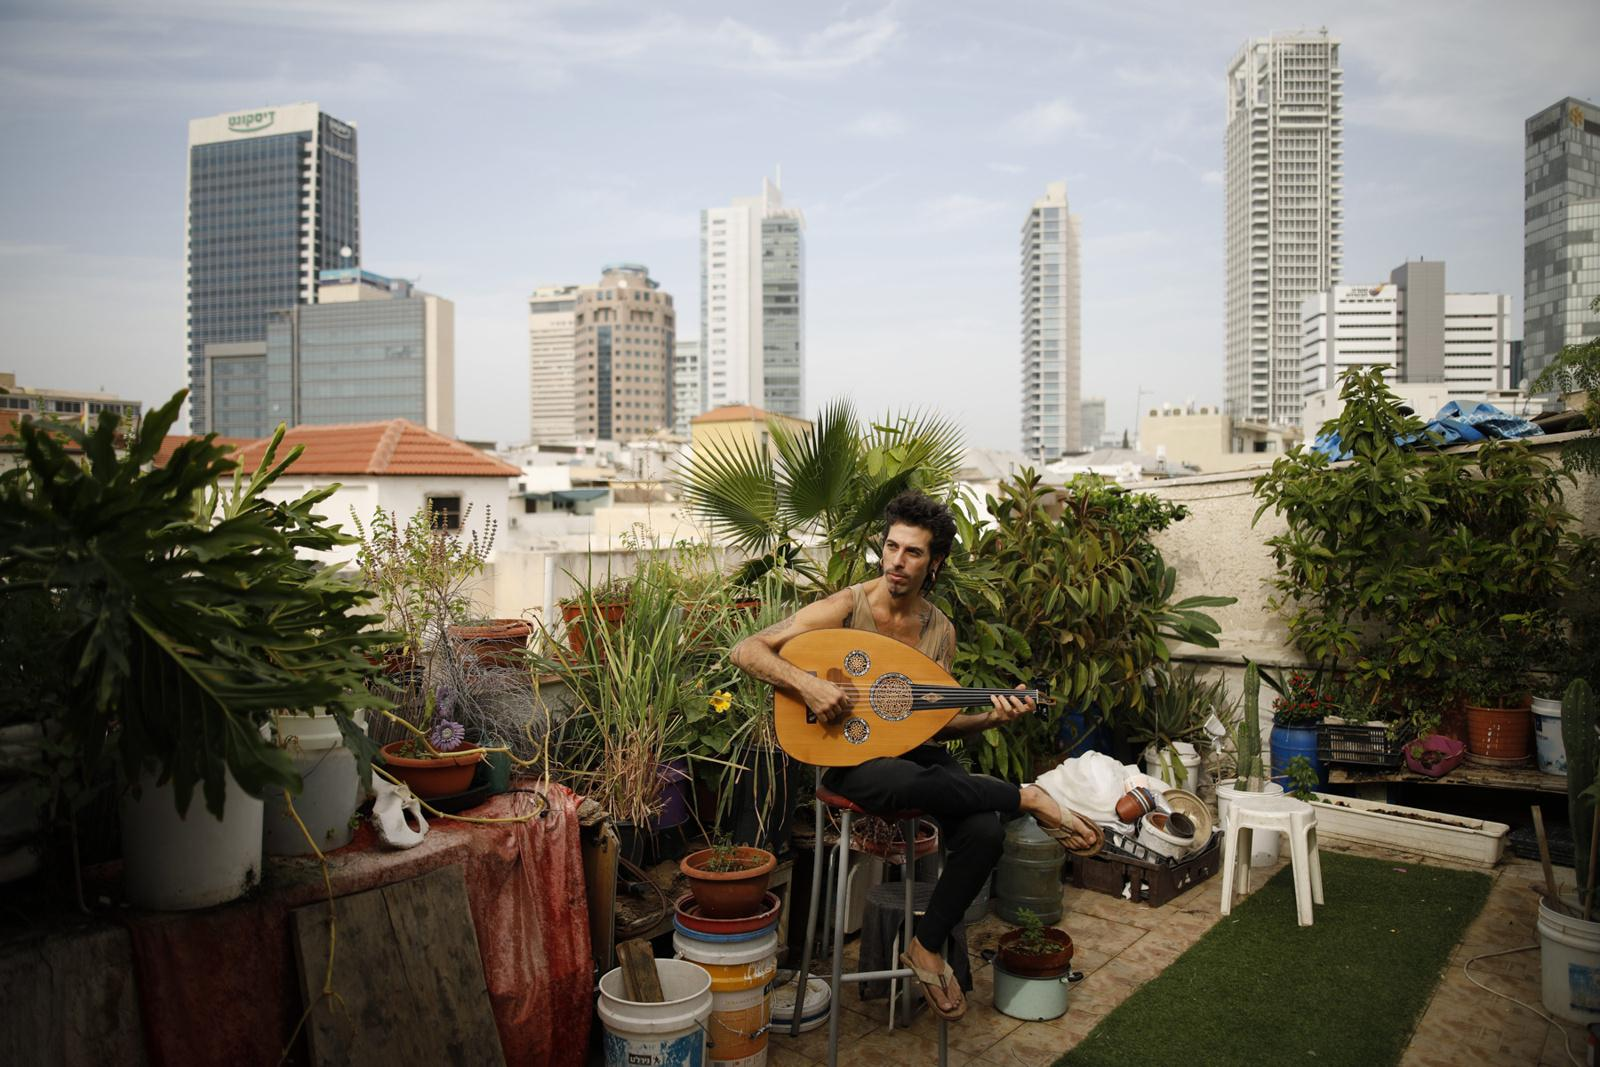 Musician Iyar Semel, 38, plays on his Oud in his rooftop garden, where he and his two other flatmates grow herbs and vegetables, November 13, 2017, Florentin, Tel Aviv, Israel.